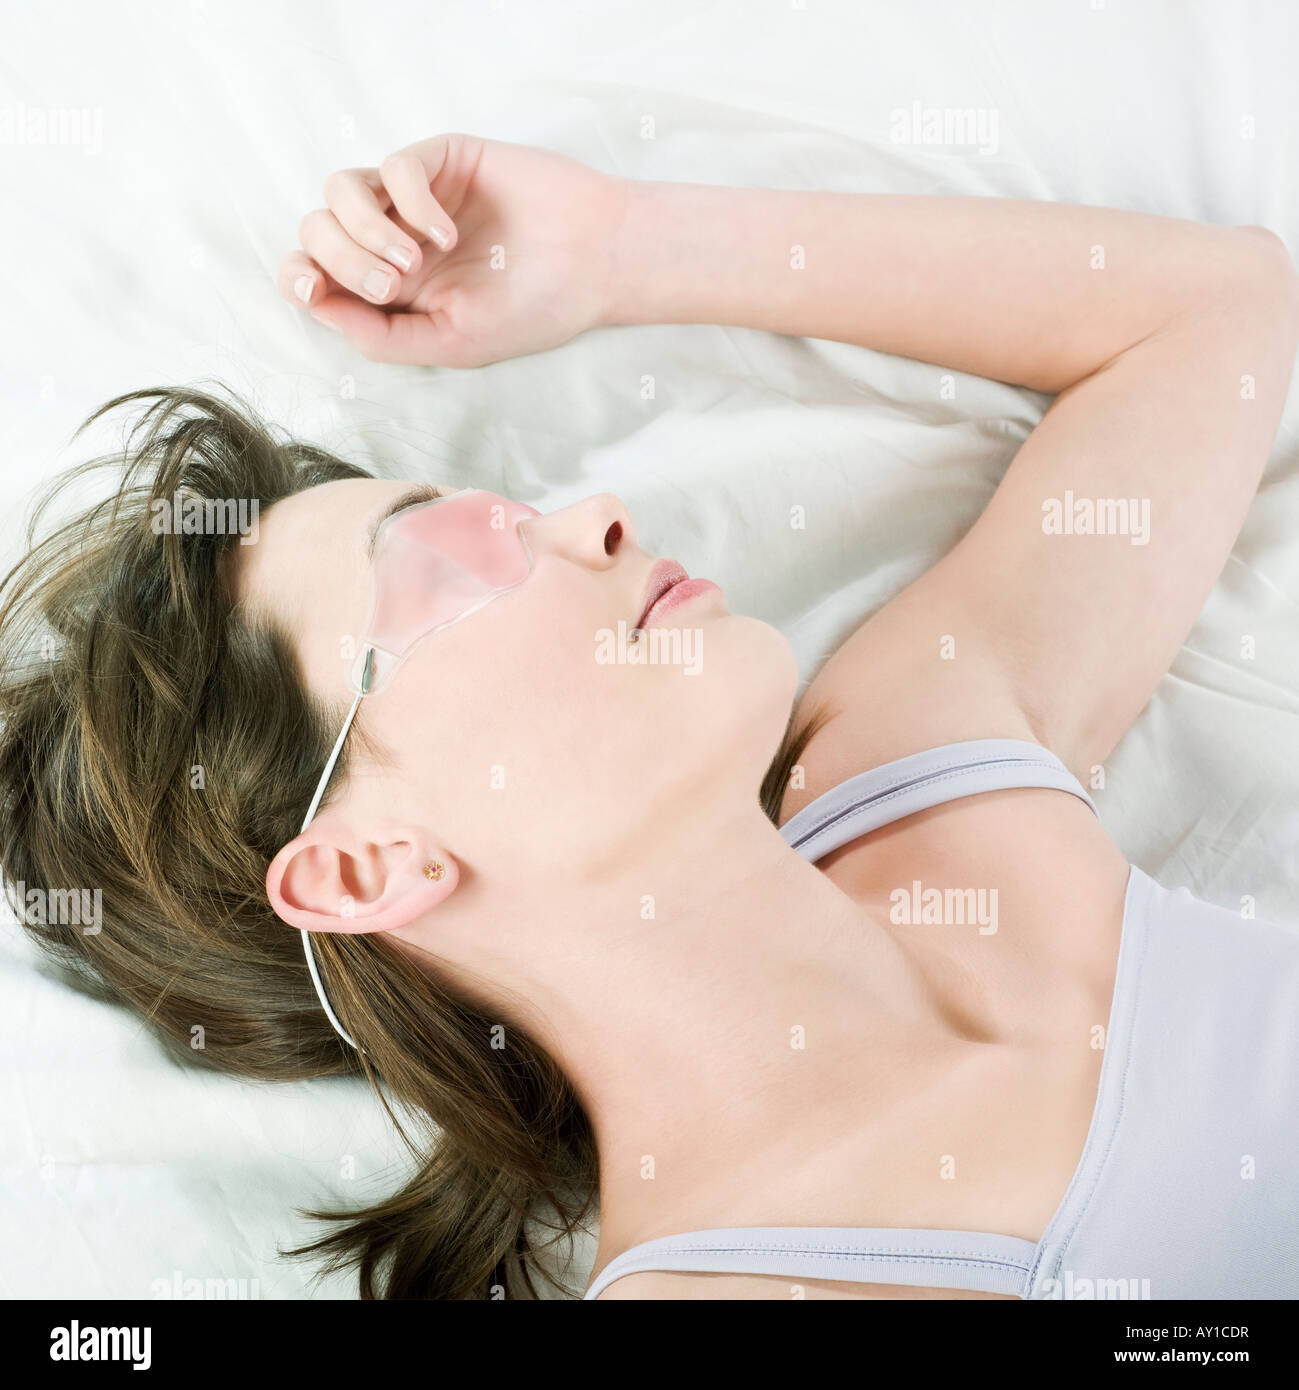 woman lying on a white bed wearing a cryogenic facial beauty treatment mask - Stock Image